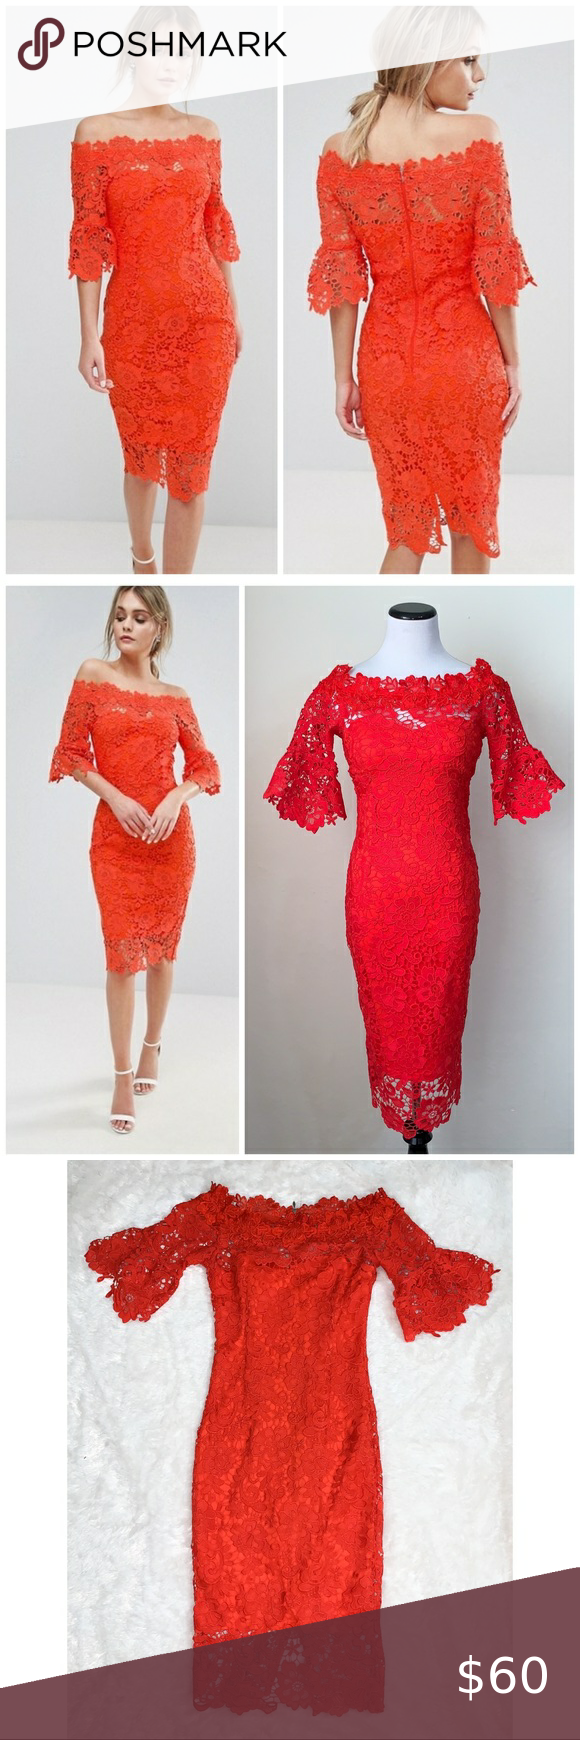 Asos Paper Dolls Red Lace Off Shoulder Midi Dress Paper Dolls Asos Red Off Shoulder Crochet Midi Dress With Frill Sleeves Us Size 4 In 2020 Crochet Midi Dress Red Lace Dresses